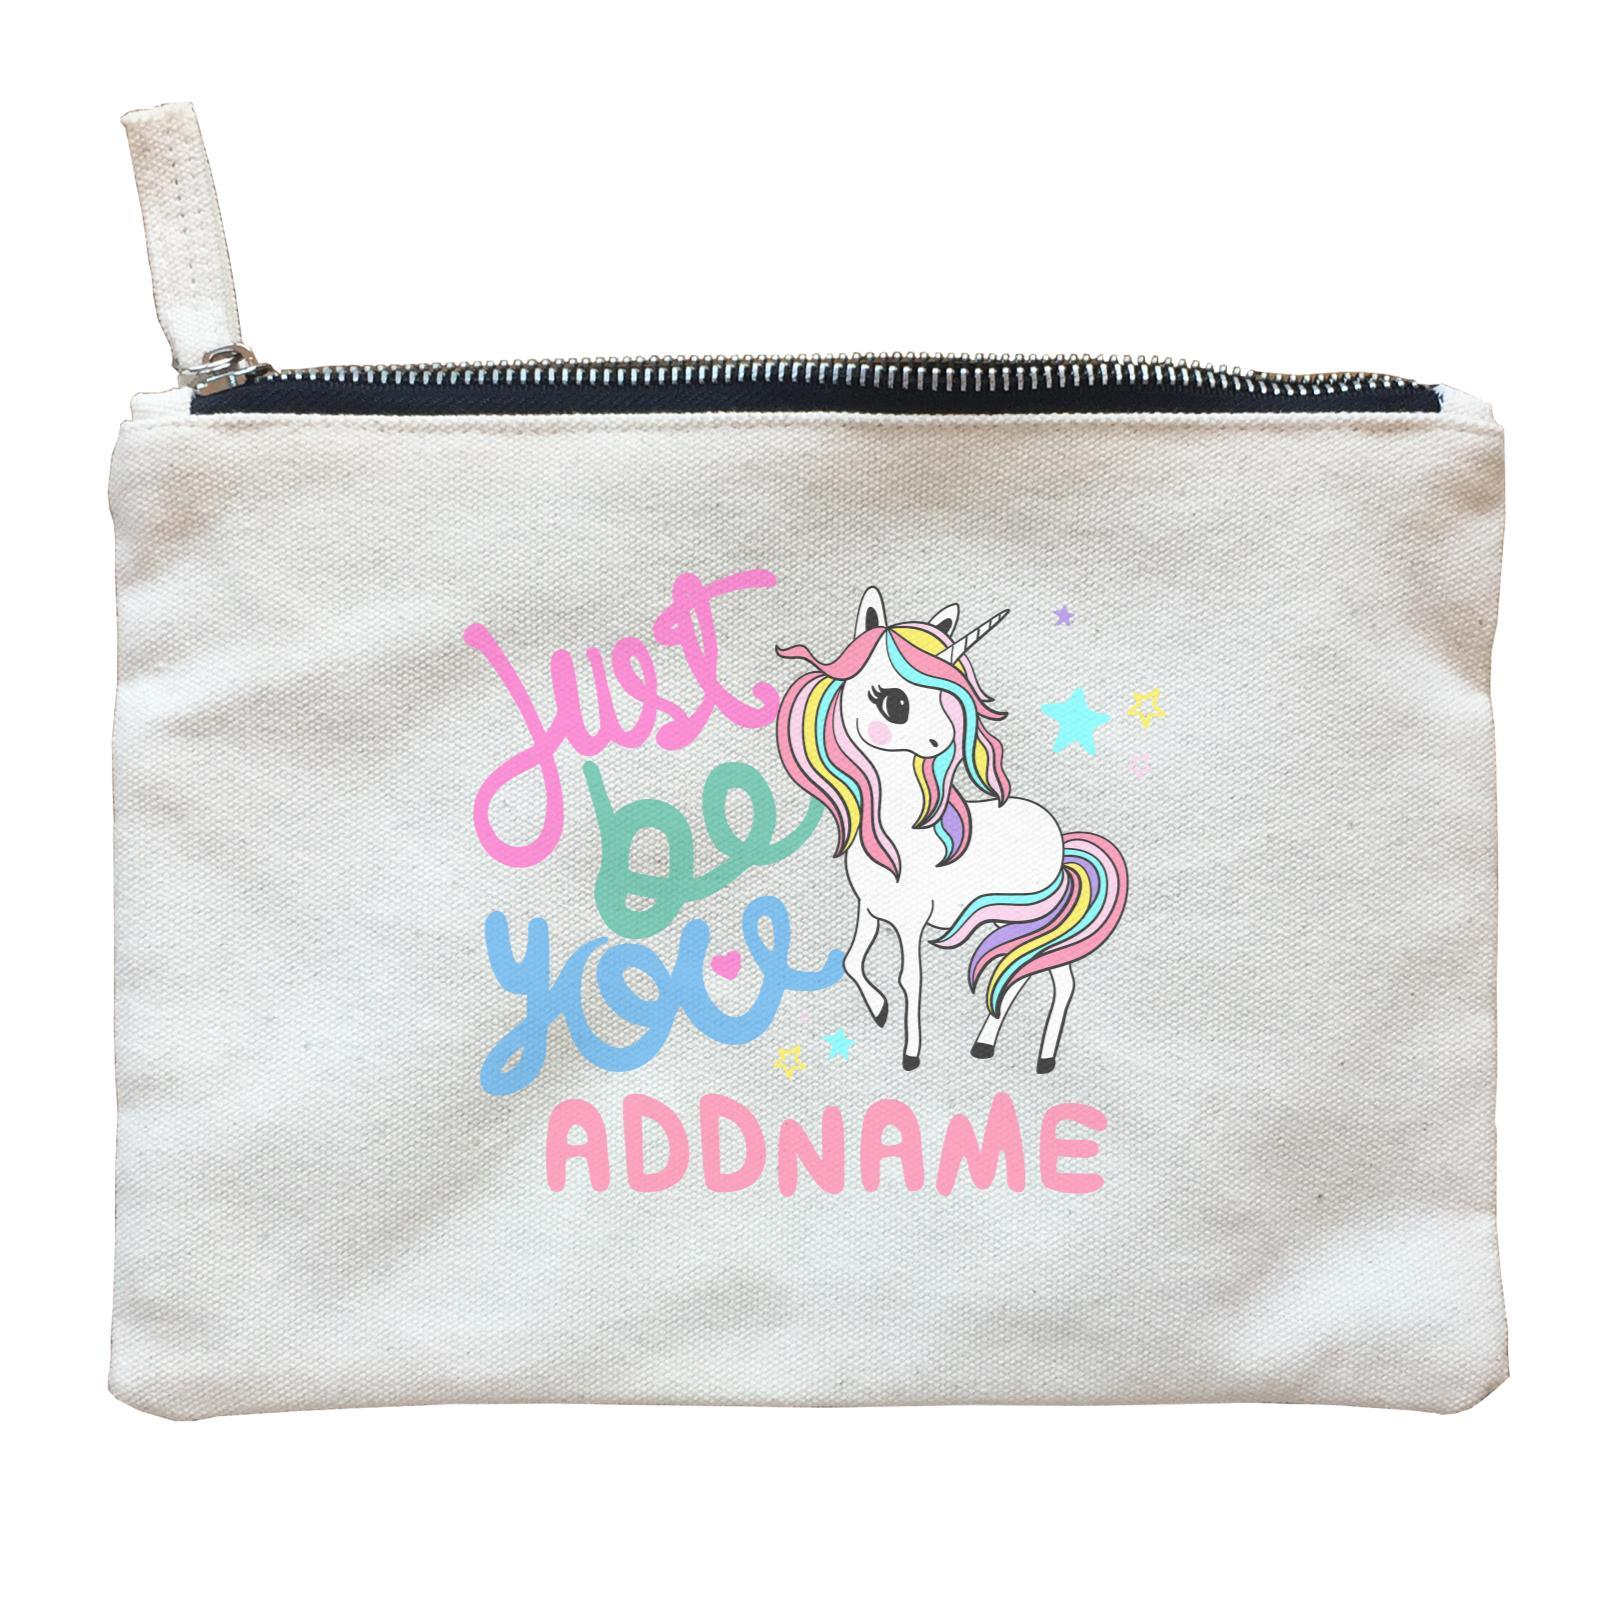 Children's Day Gift Series Just Be You Cute Unicorn Addname  Zipper Pouch